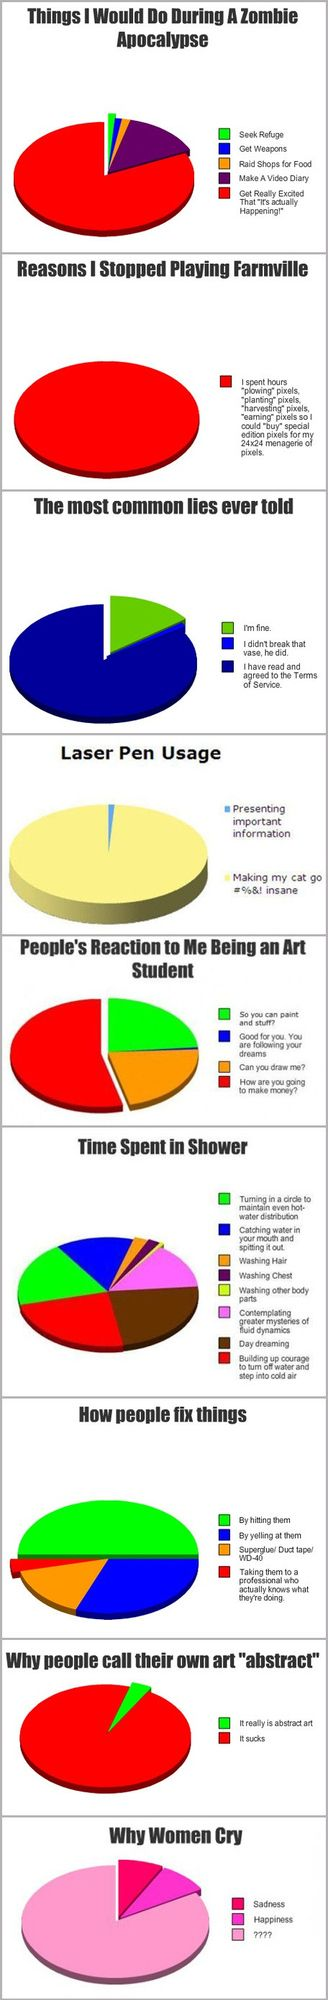 Informative Pie Charts- I like the art student one